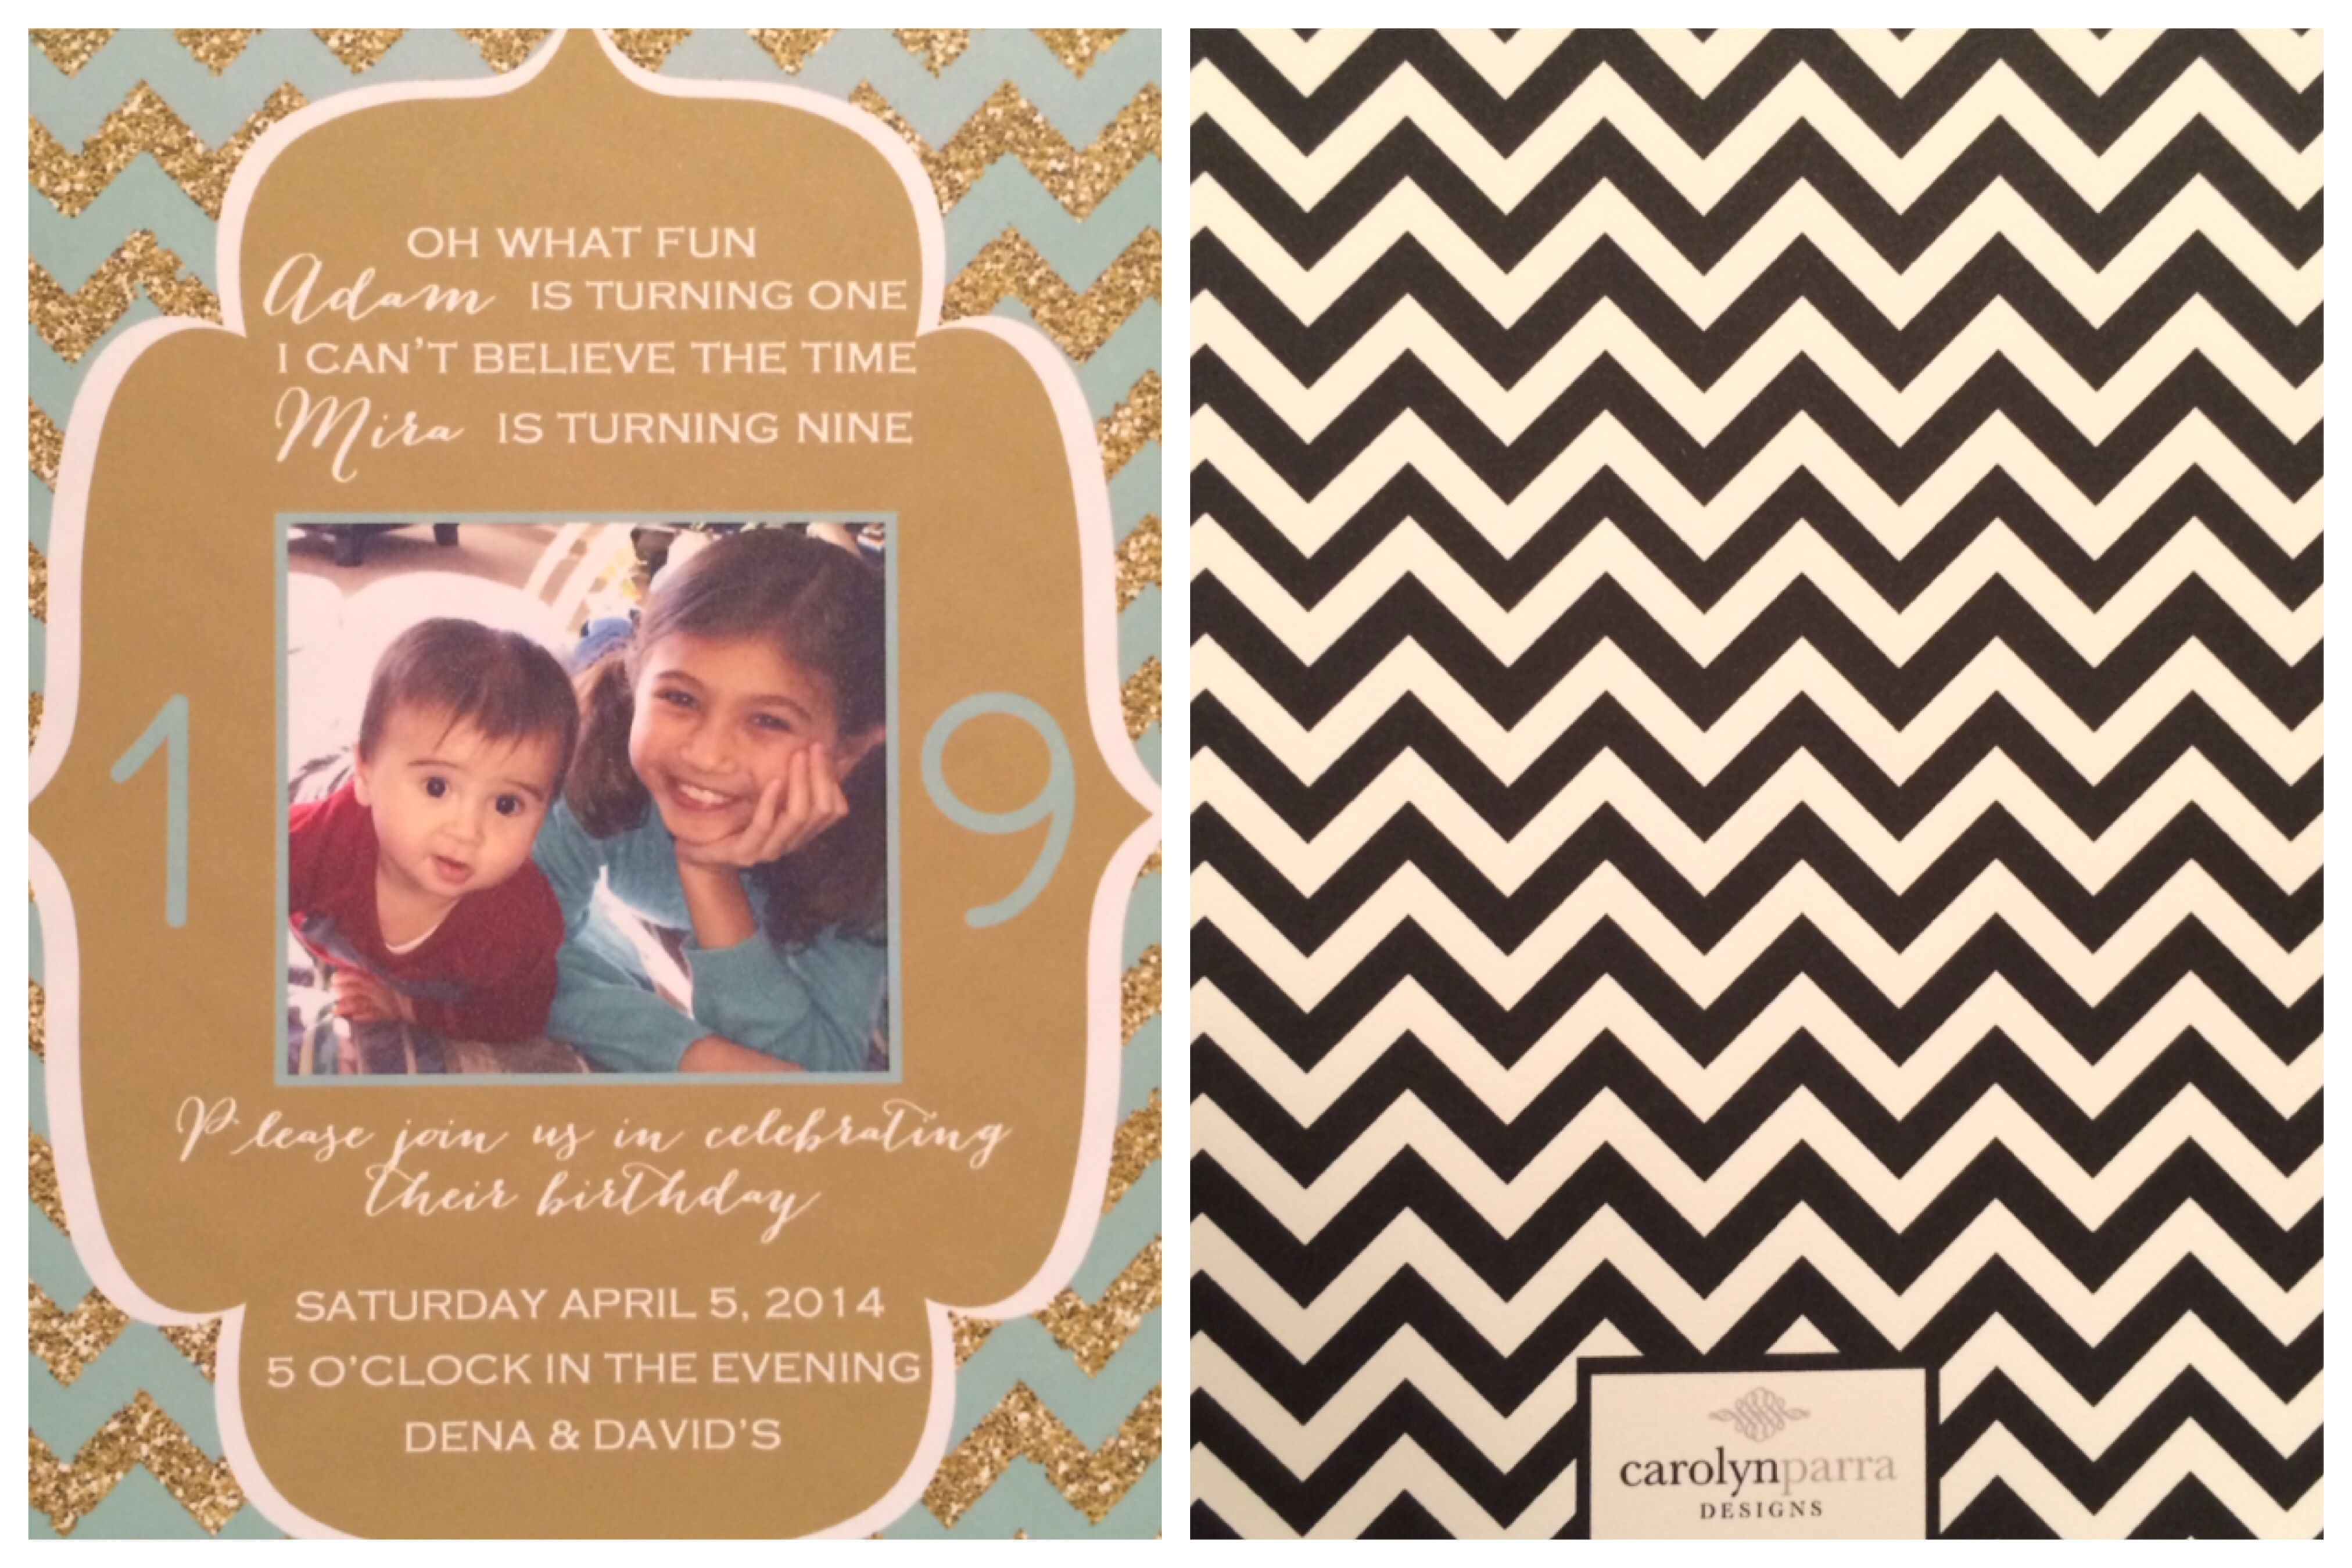 Birthday party I planned for my niece and nephew...invitation courtesy of Carolyn Parra Designs (Etsy)